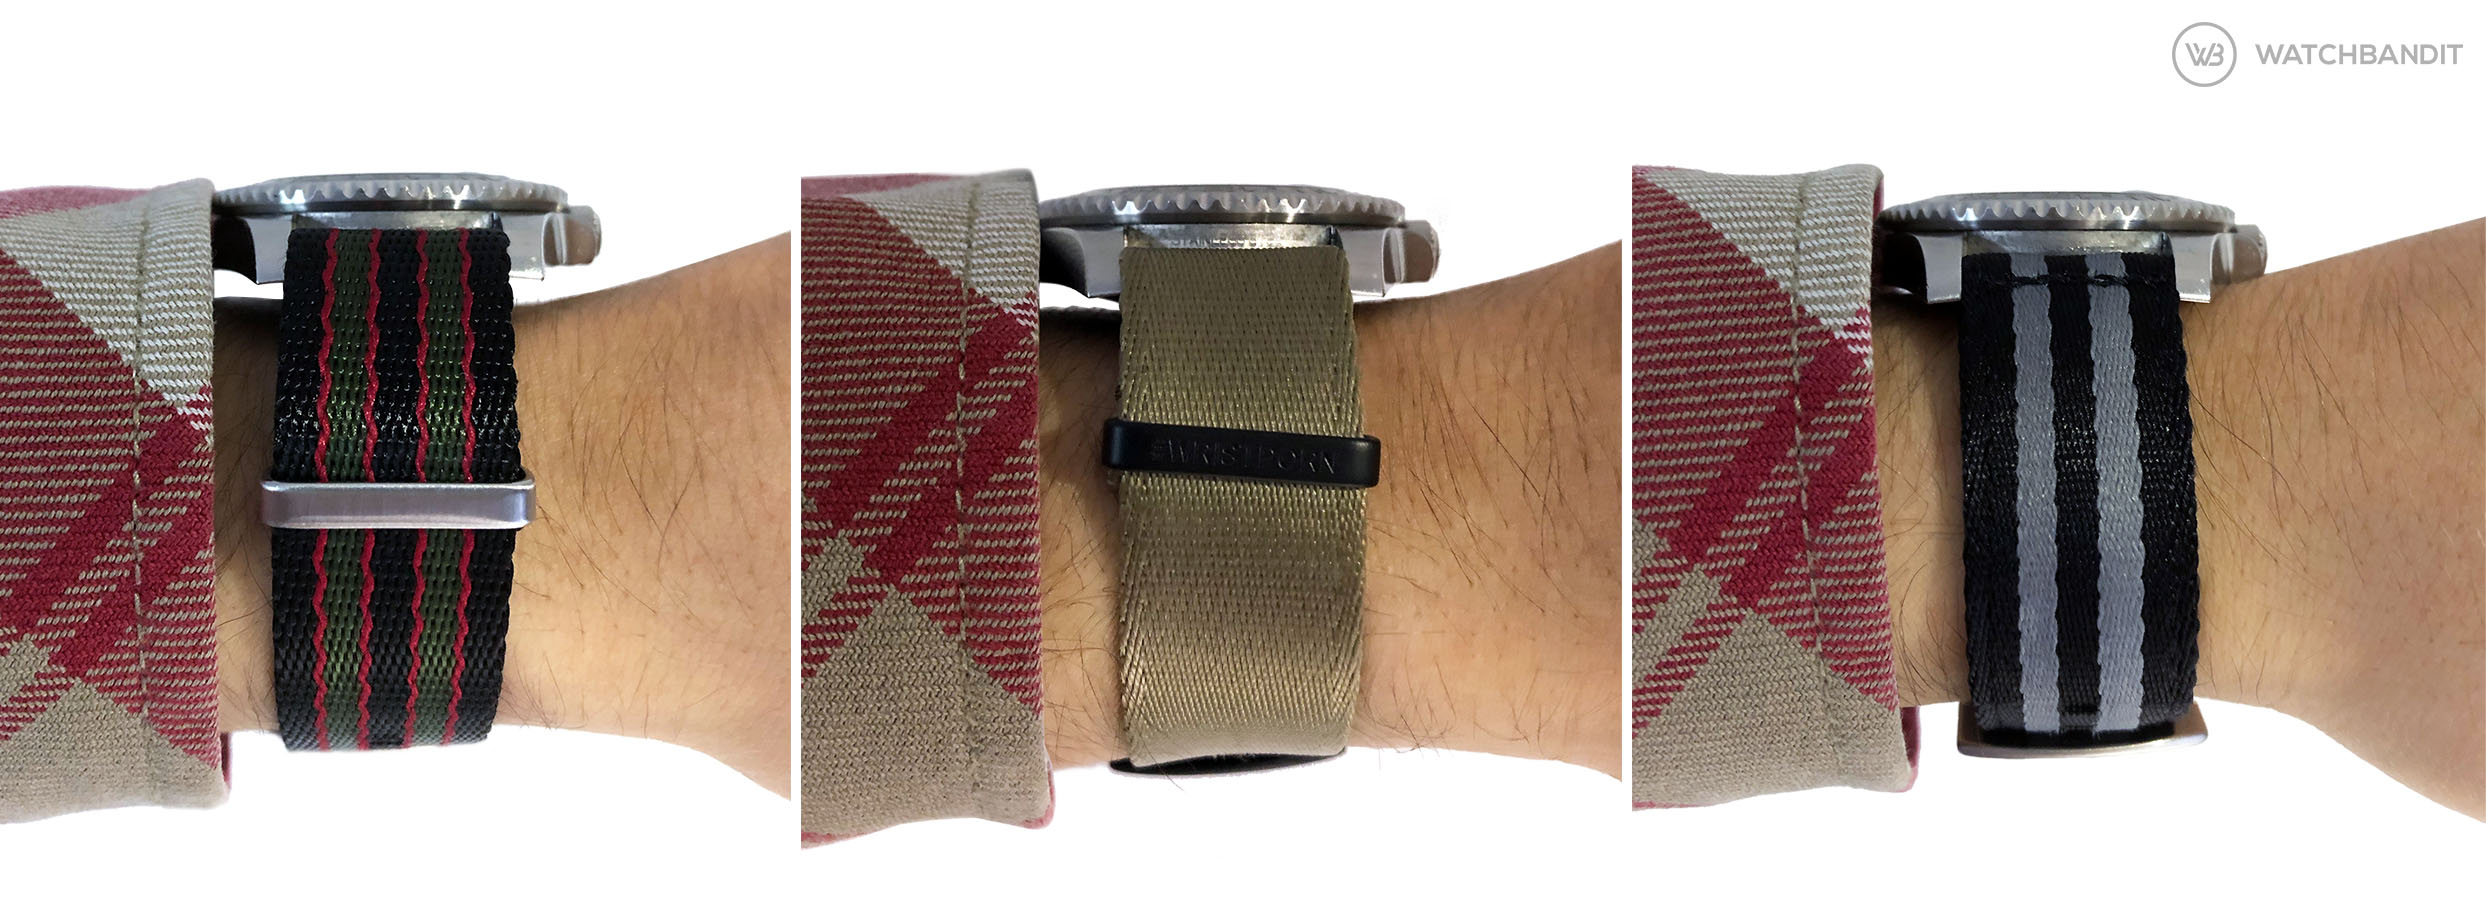 Height comparison of NATO straps 1,4 mm 1,2 mm 0 mm WatchBandit two piece NATO strap